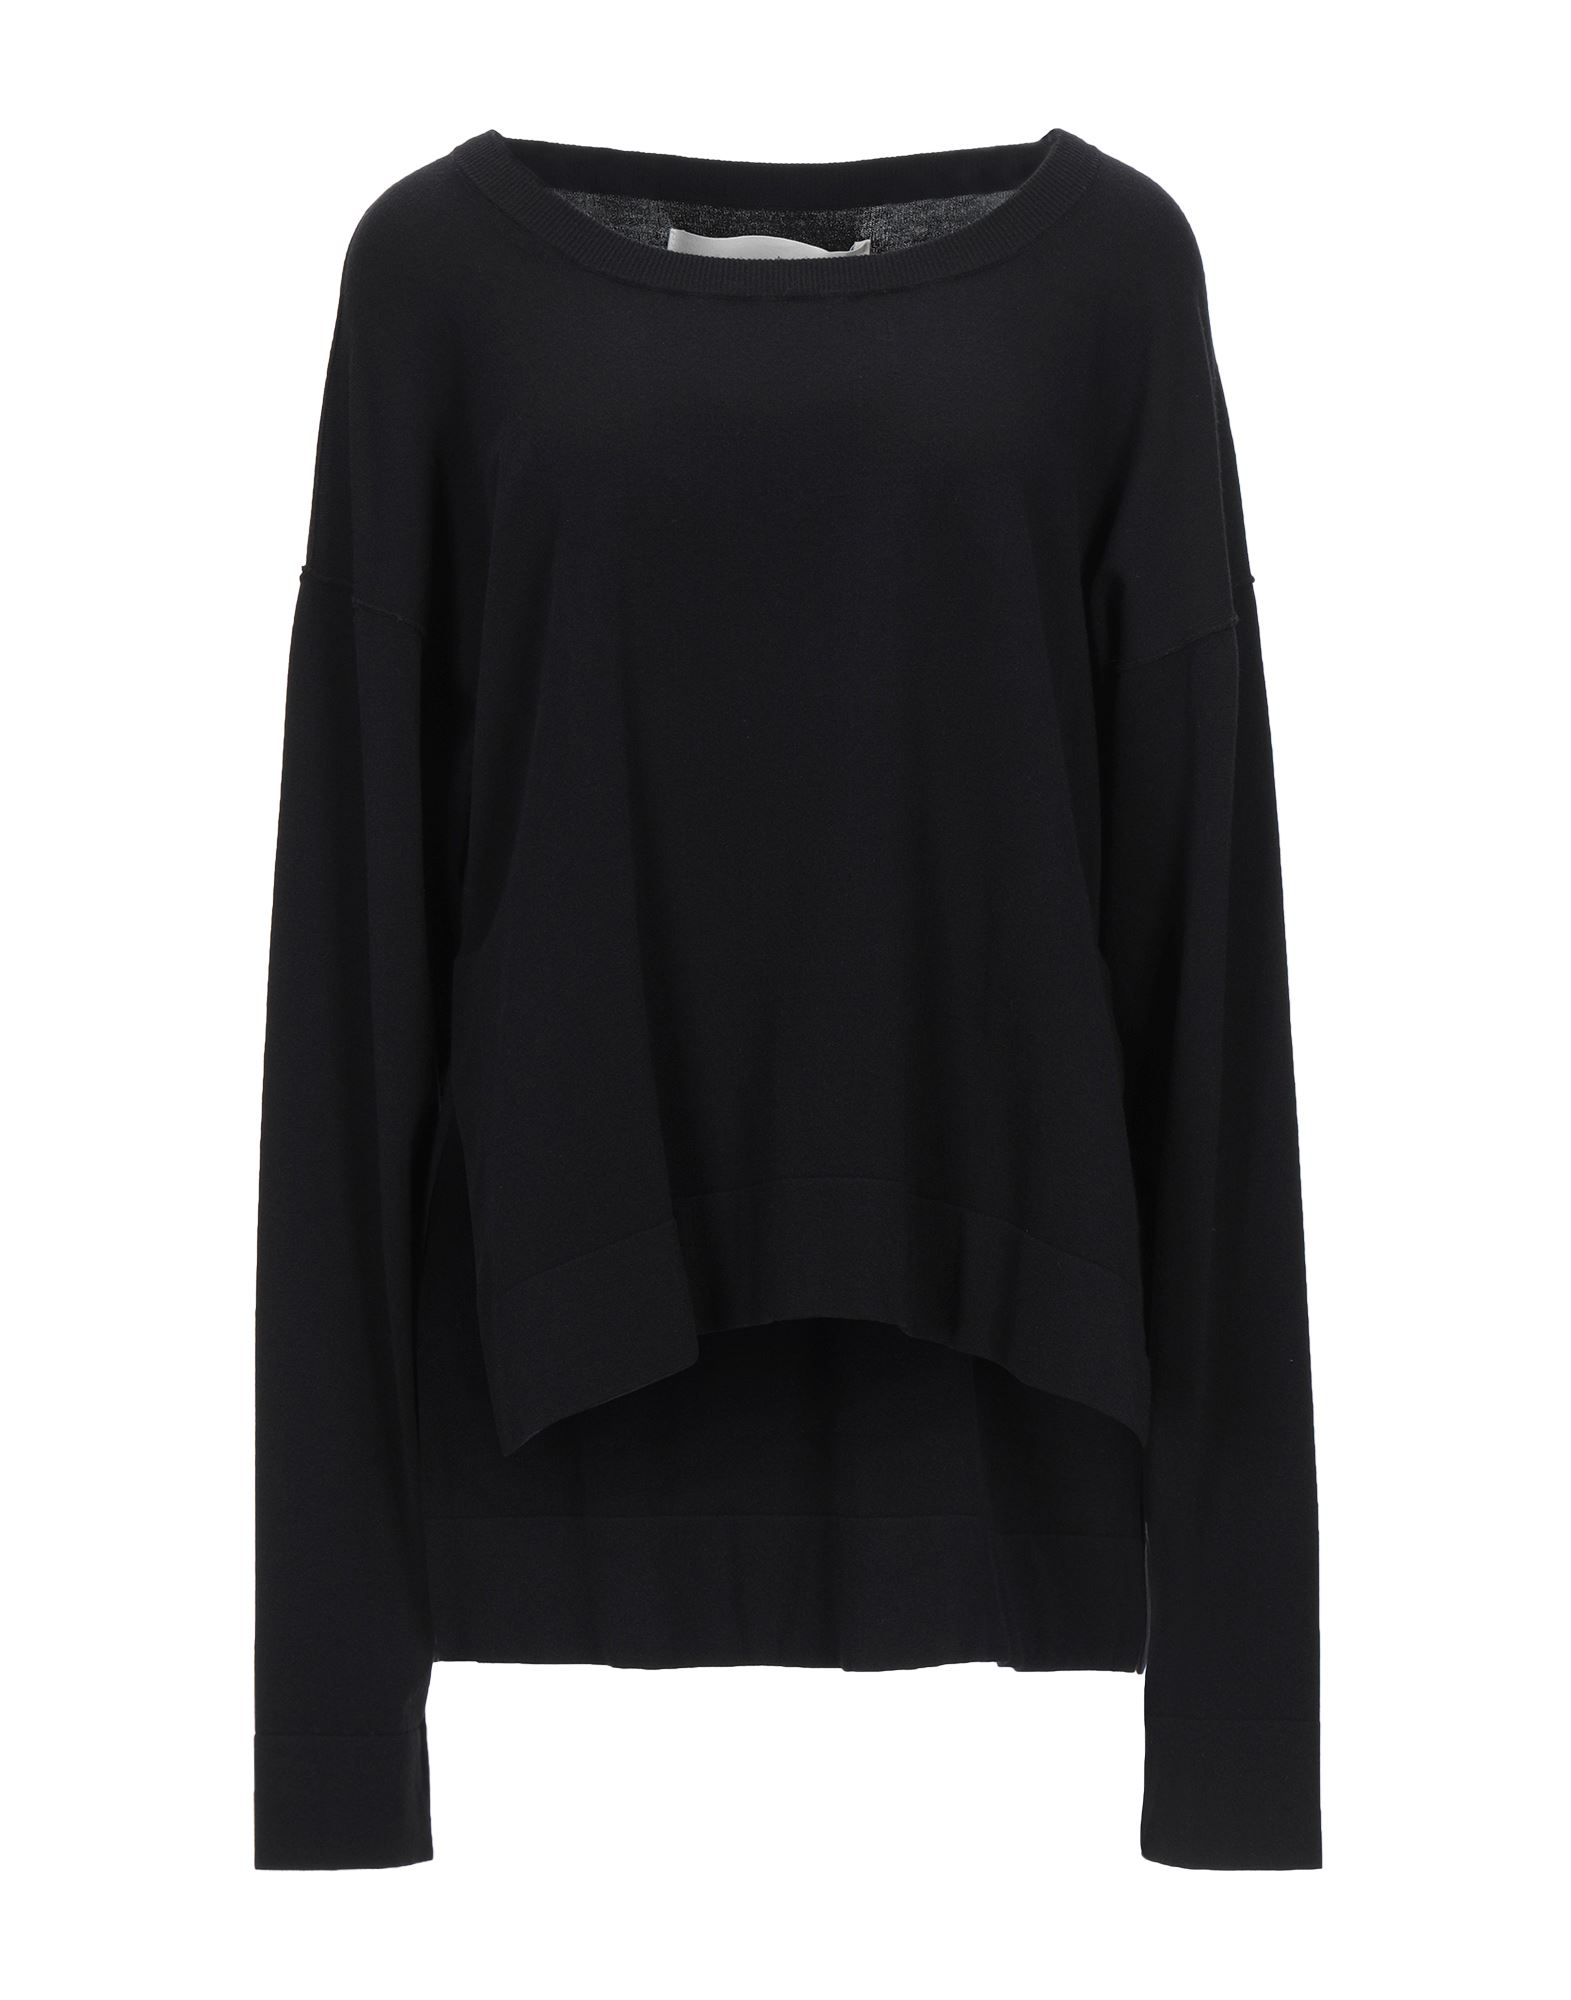 ISABEL BENENATO Sweaters - Item 14089298